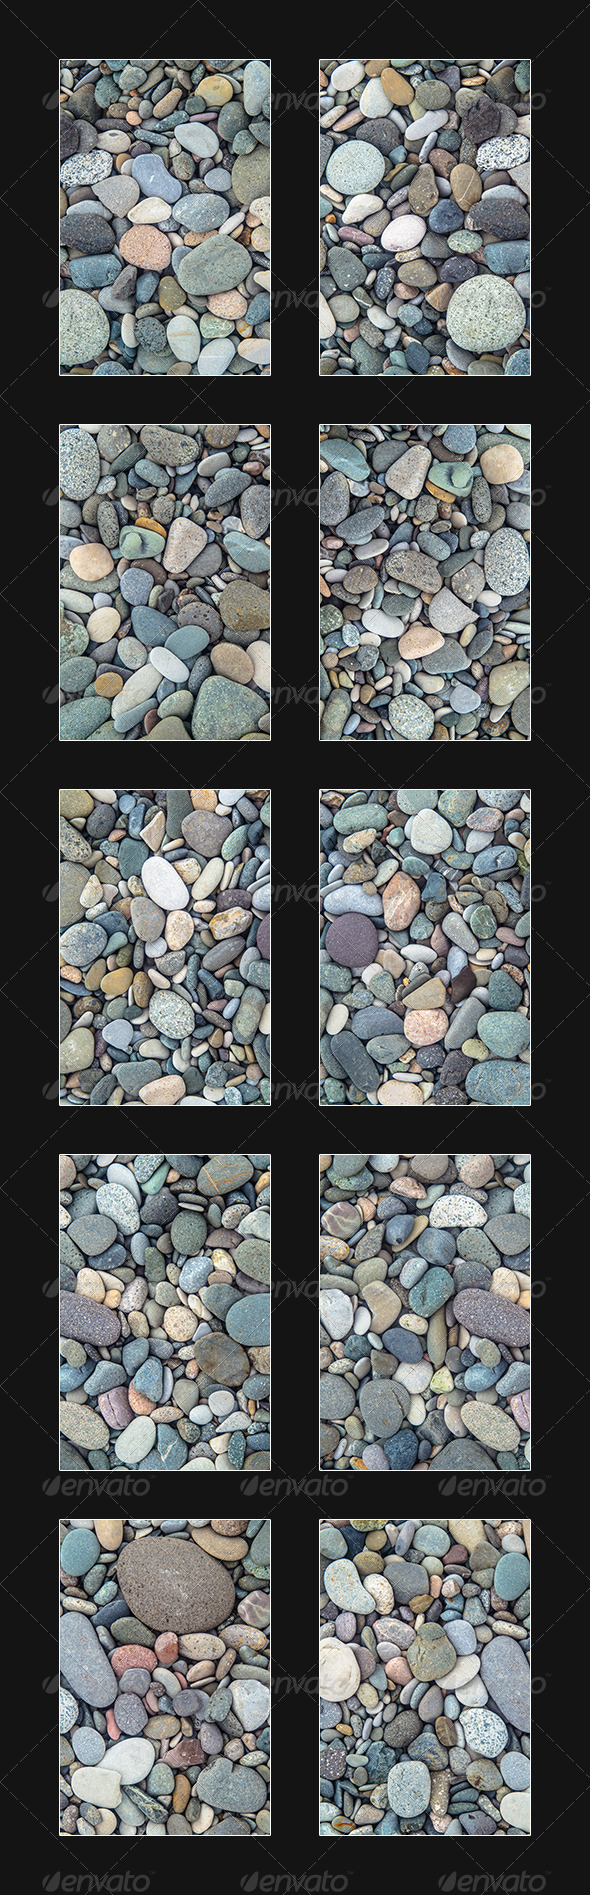 Pack Of Small Stones, 10 Textures - Stone Textures